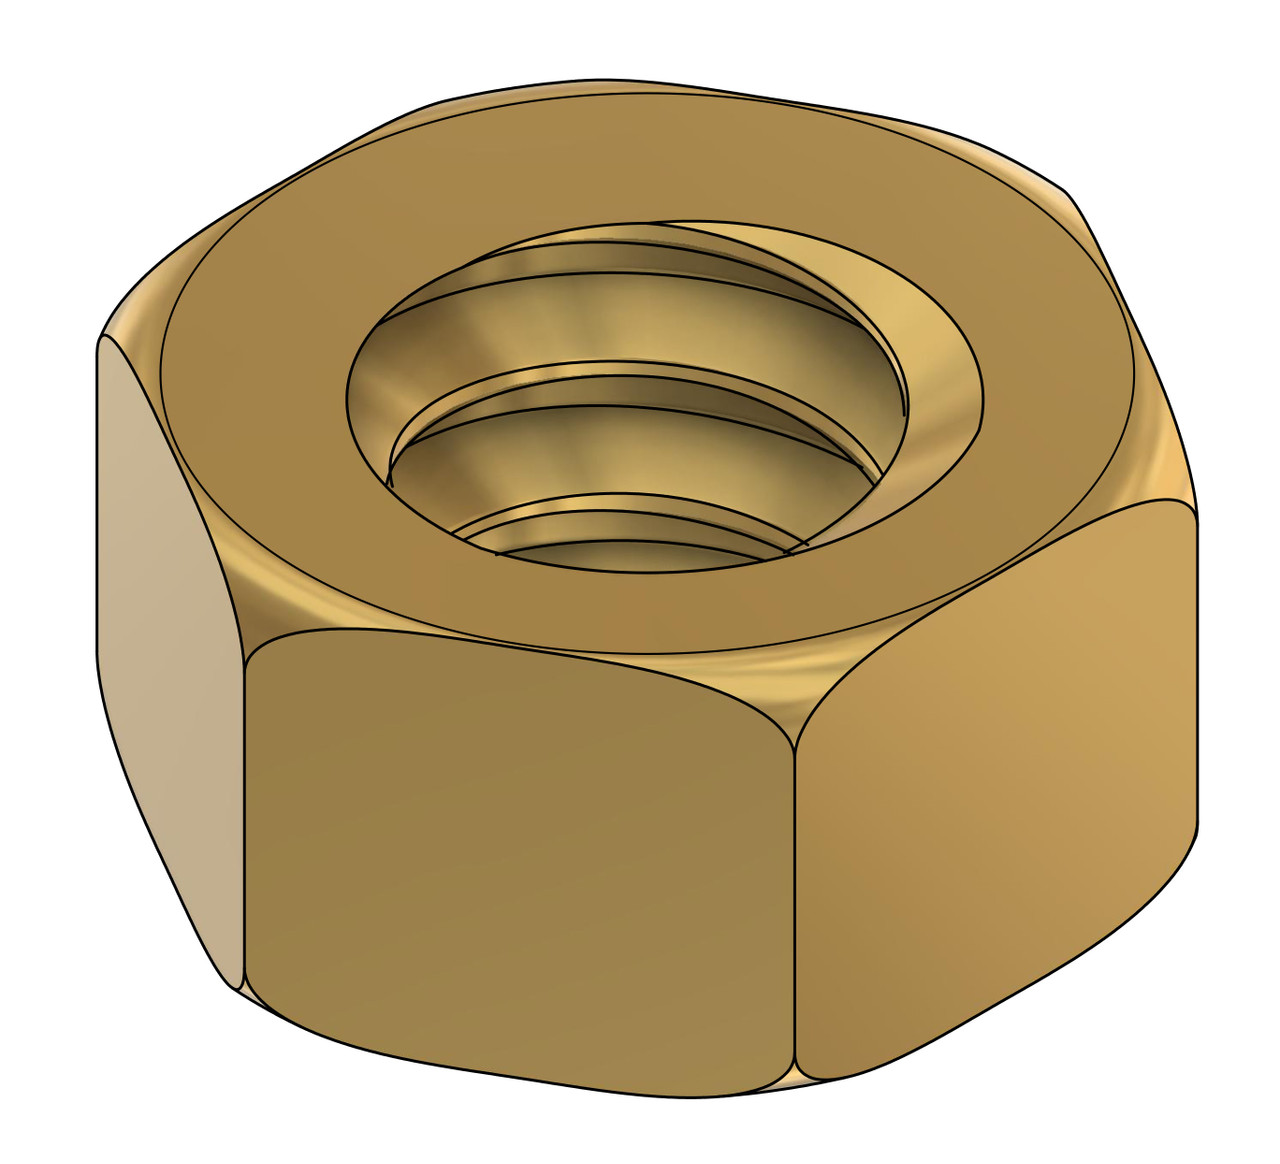 """Machined Hex Nut, Metric Thread M.80 x .20mm Pitch, also fits .80UNM, ACF (across the flats) 3/64"""" / 0.047"""", Material: Brass #360. Packaged price per 10 pieces. Bulk pricing available, email sales@minitaps.com"""